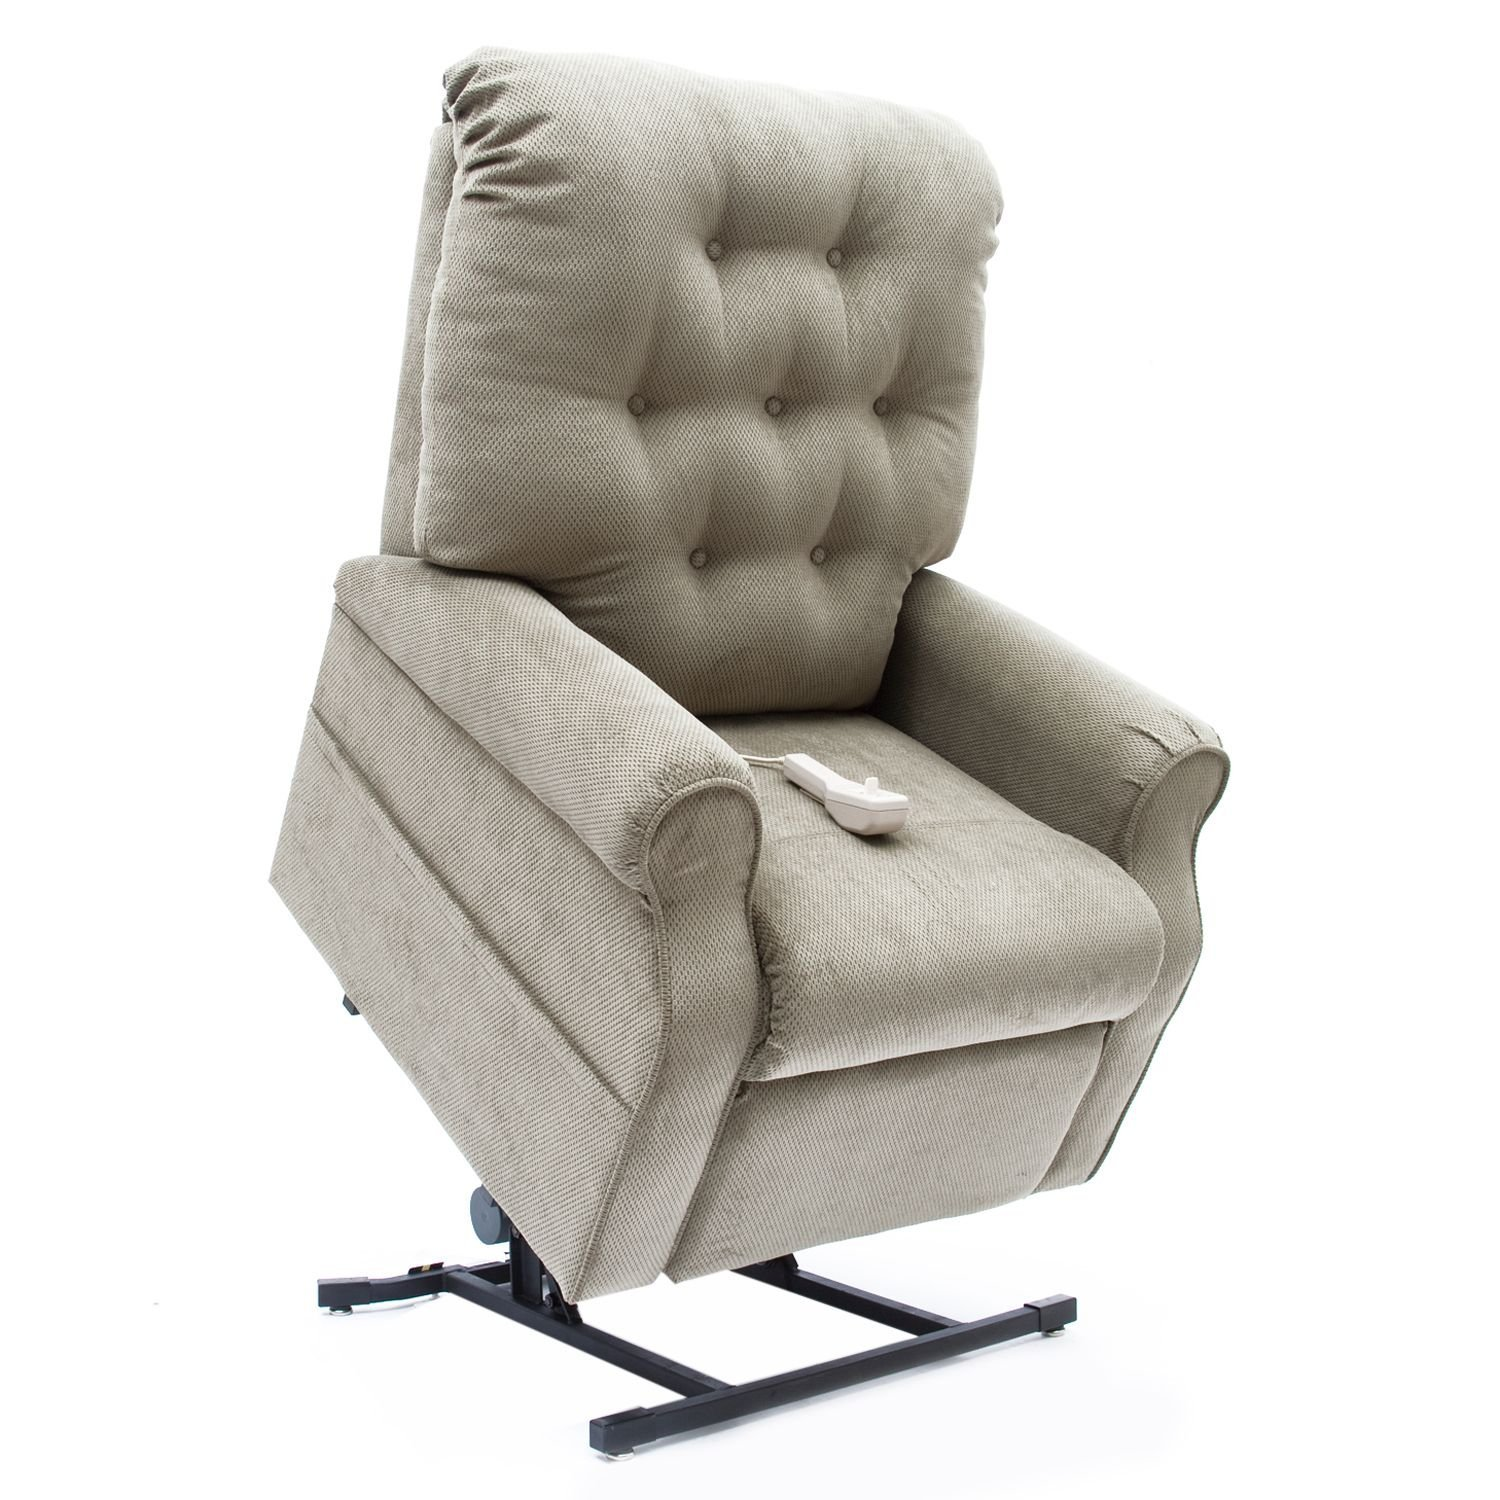 3 Position Lift Chair with Chaise Pad Color: Sage